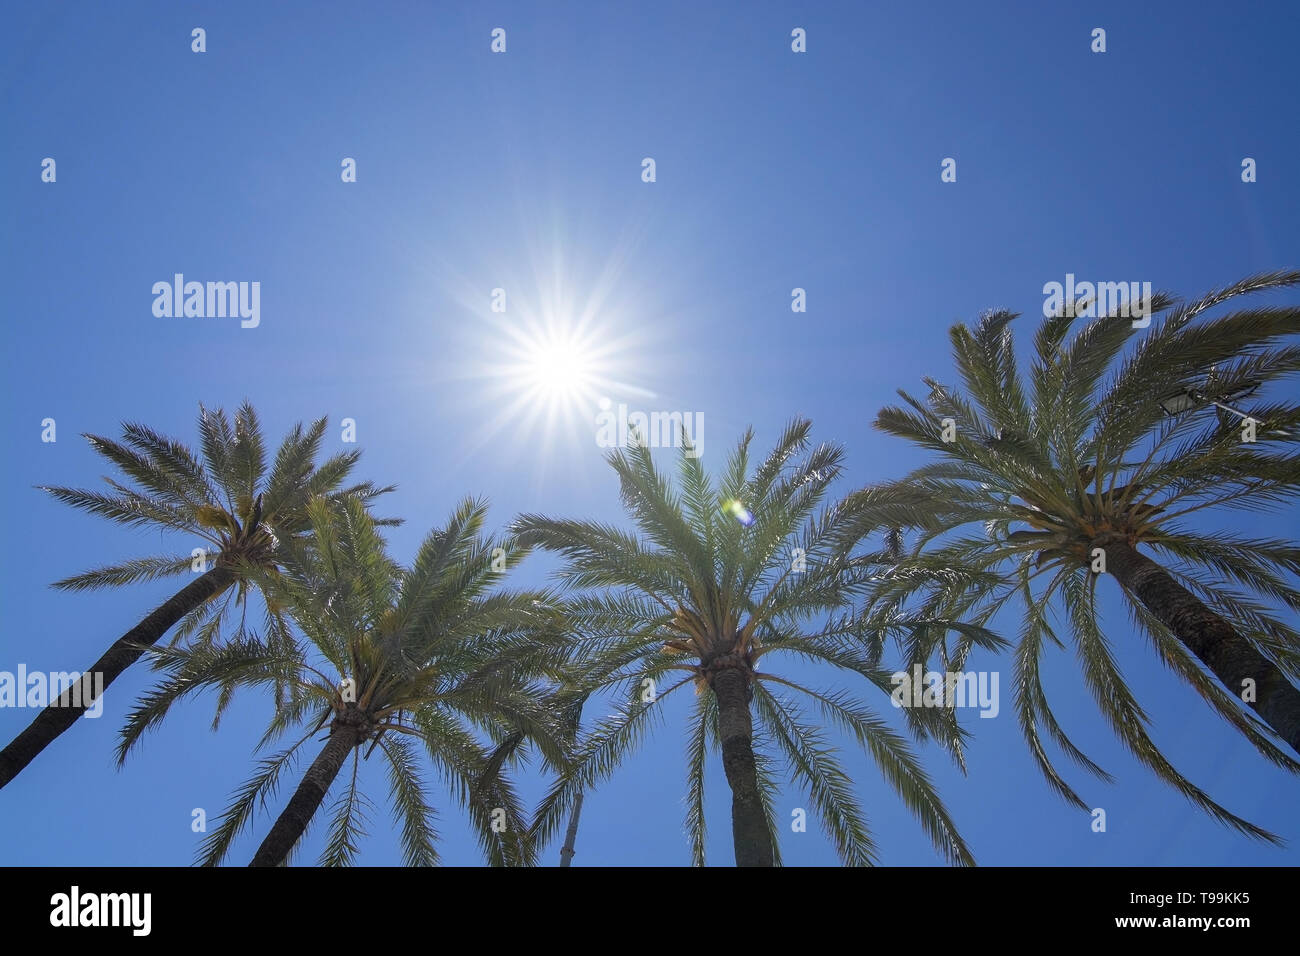 Bright sun with starry rays shines above palm trees on clear blue sky, global warming, vacation or freedom concept - Stock Image